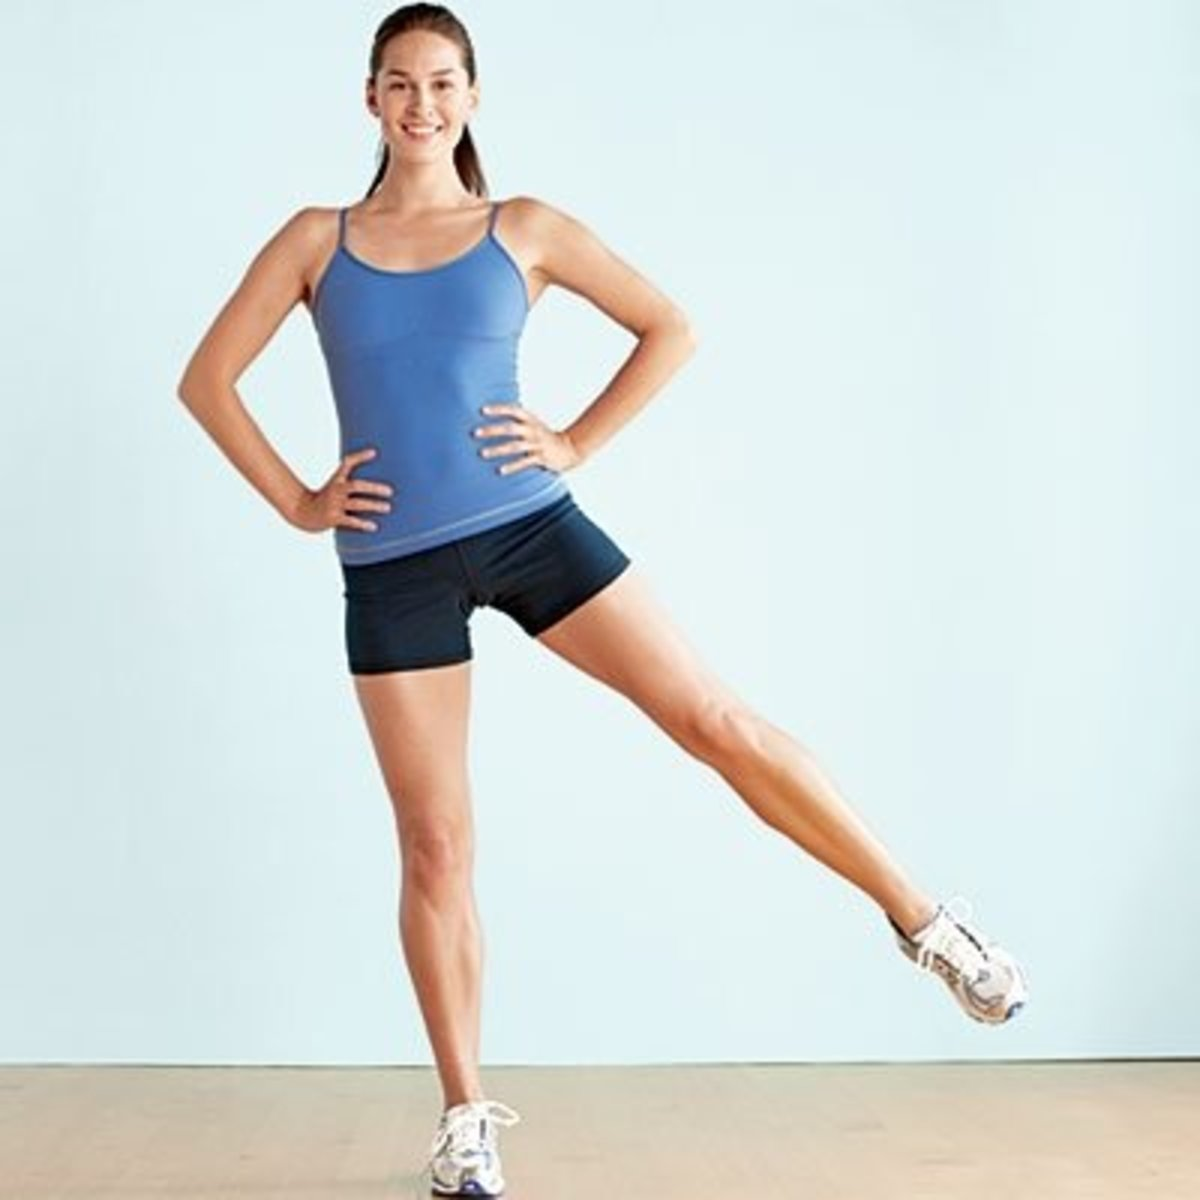 Standing Leg Lift Demonstrated by Pretty Brunette in Blue and Black Fitness Gear